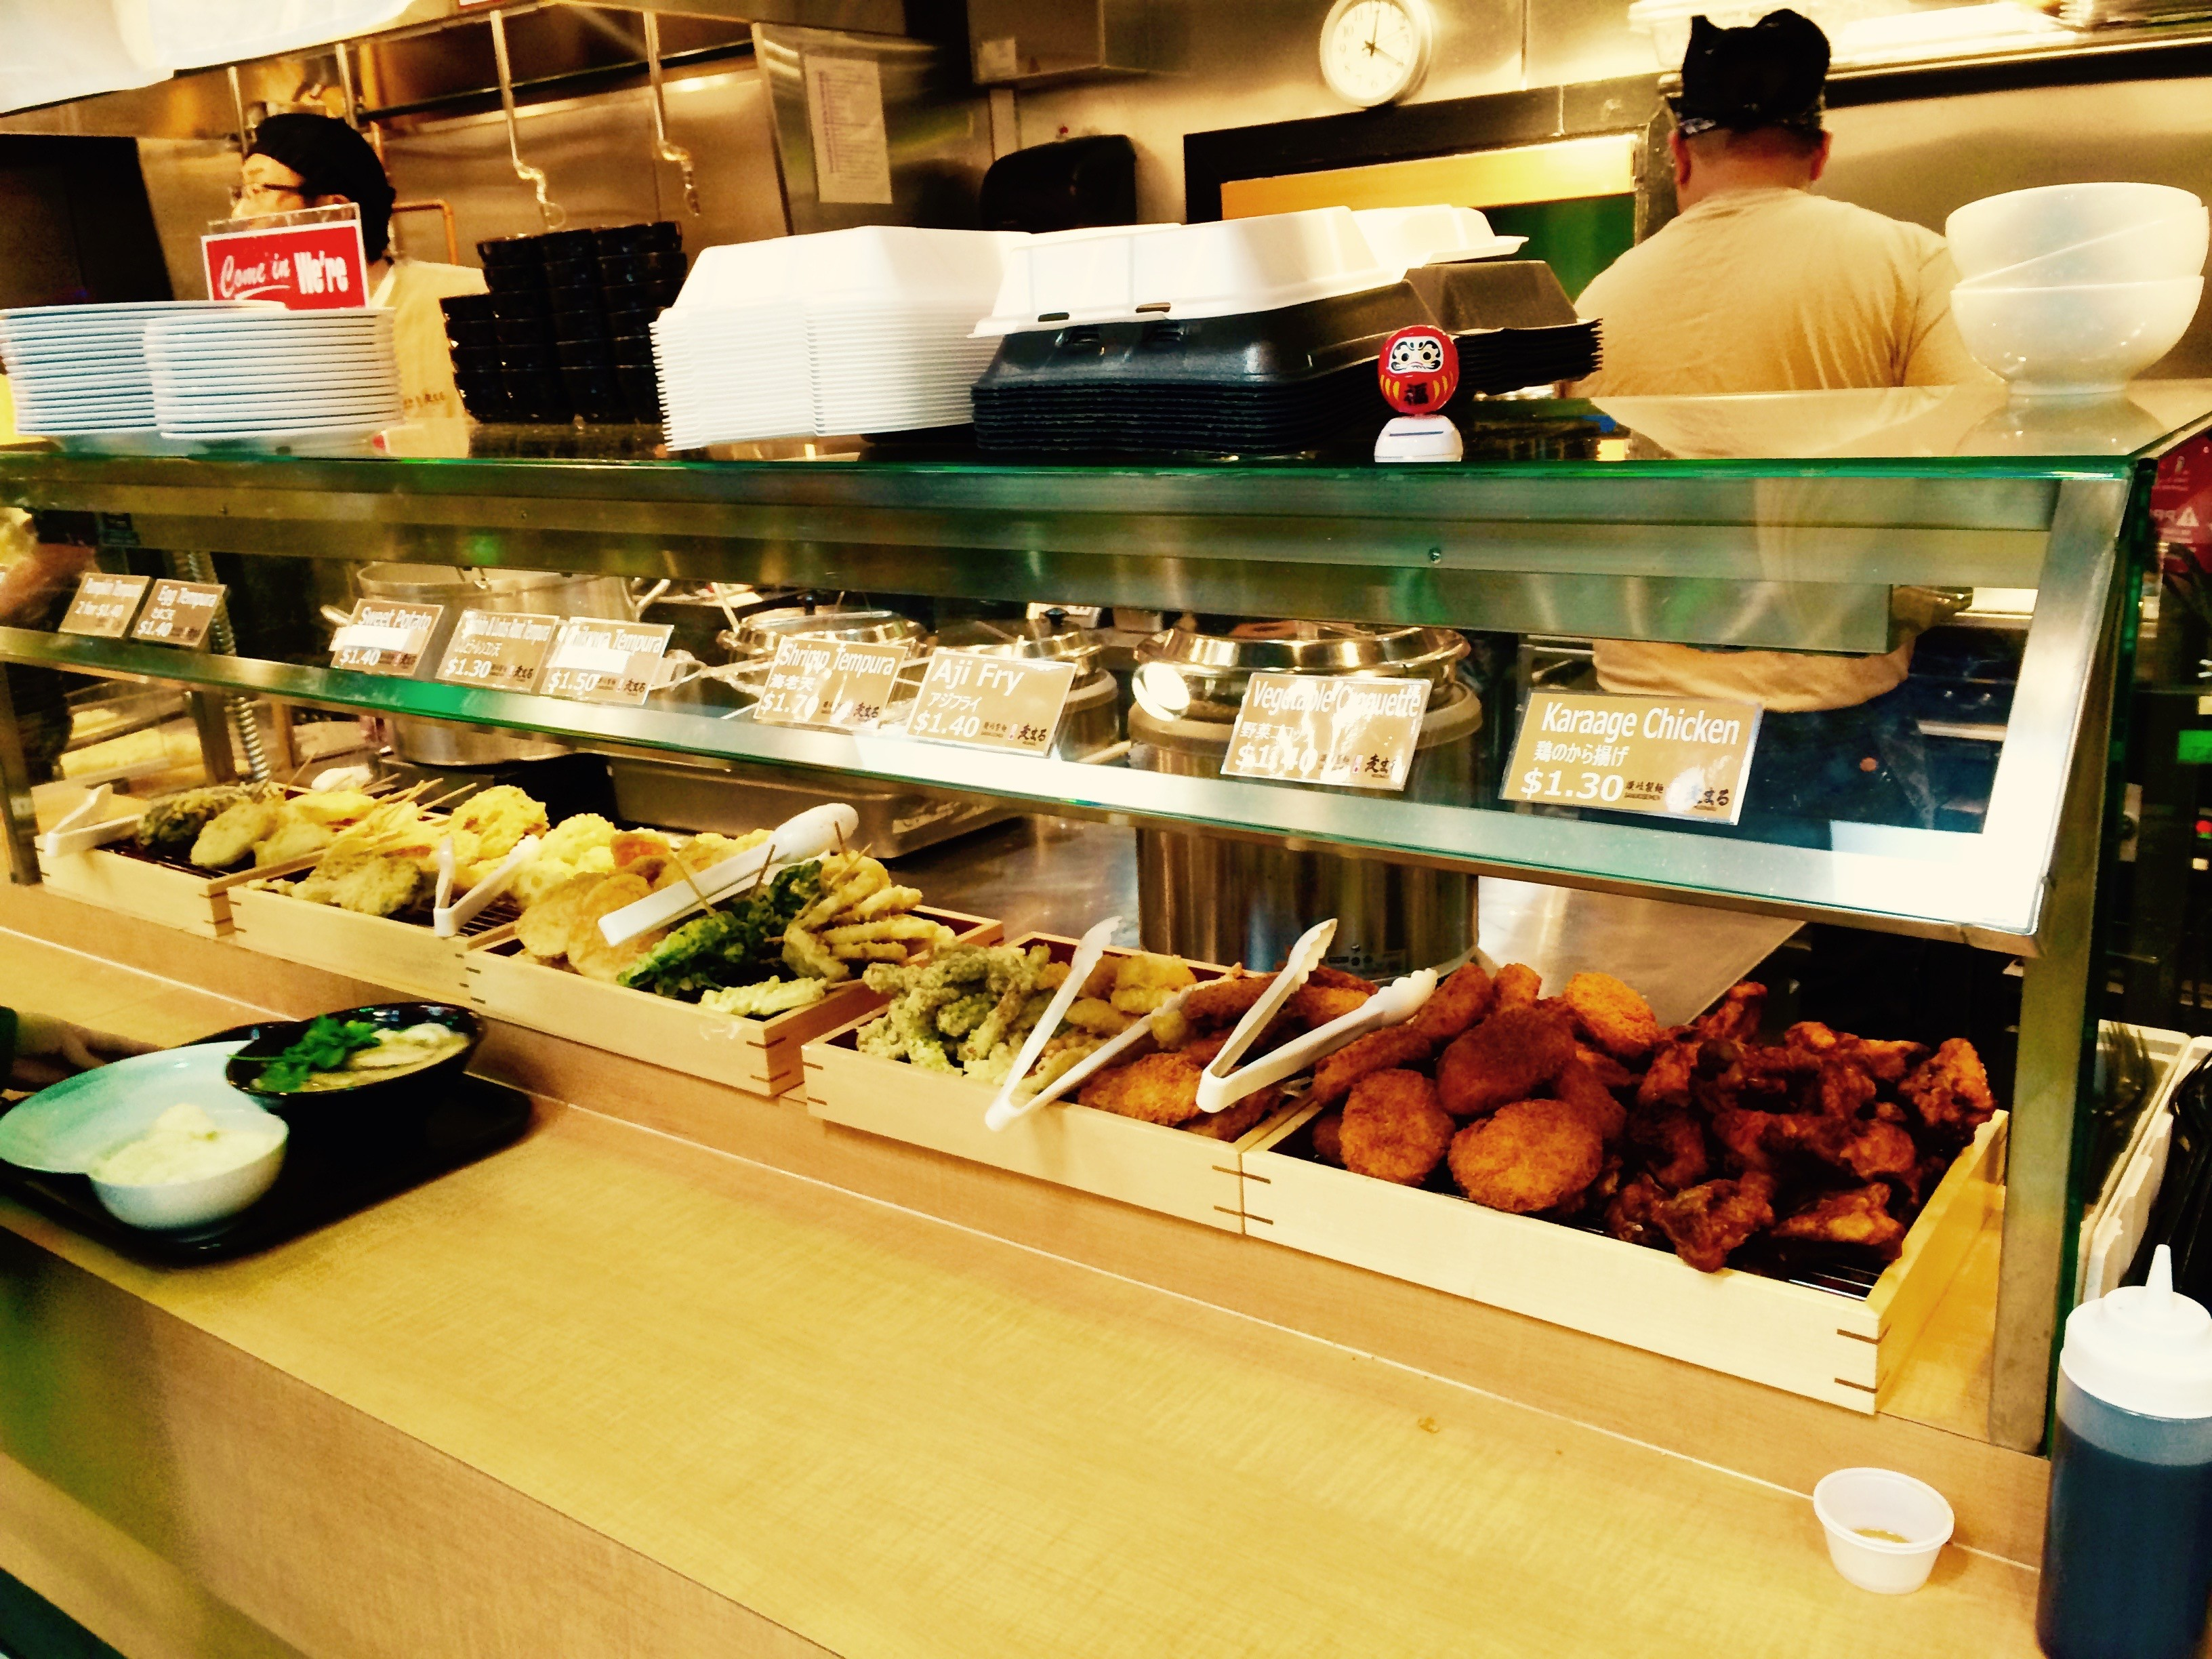 March sushi, Mitsuwa, Chicago | A Traveler's Library